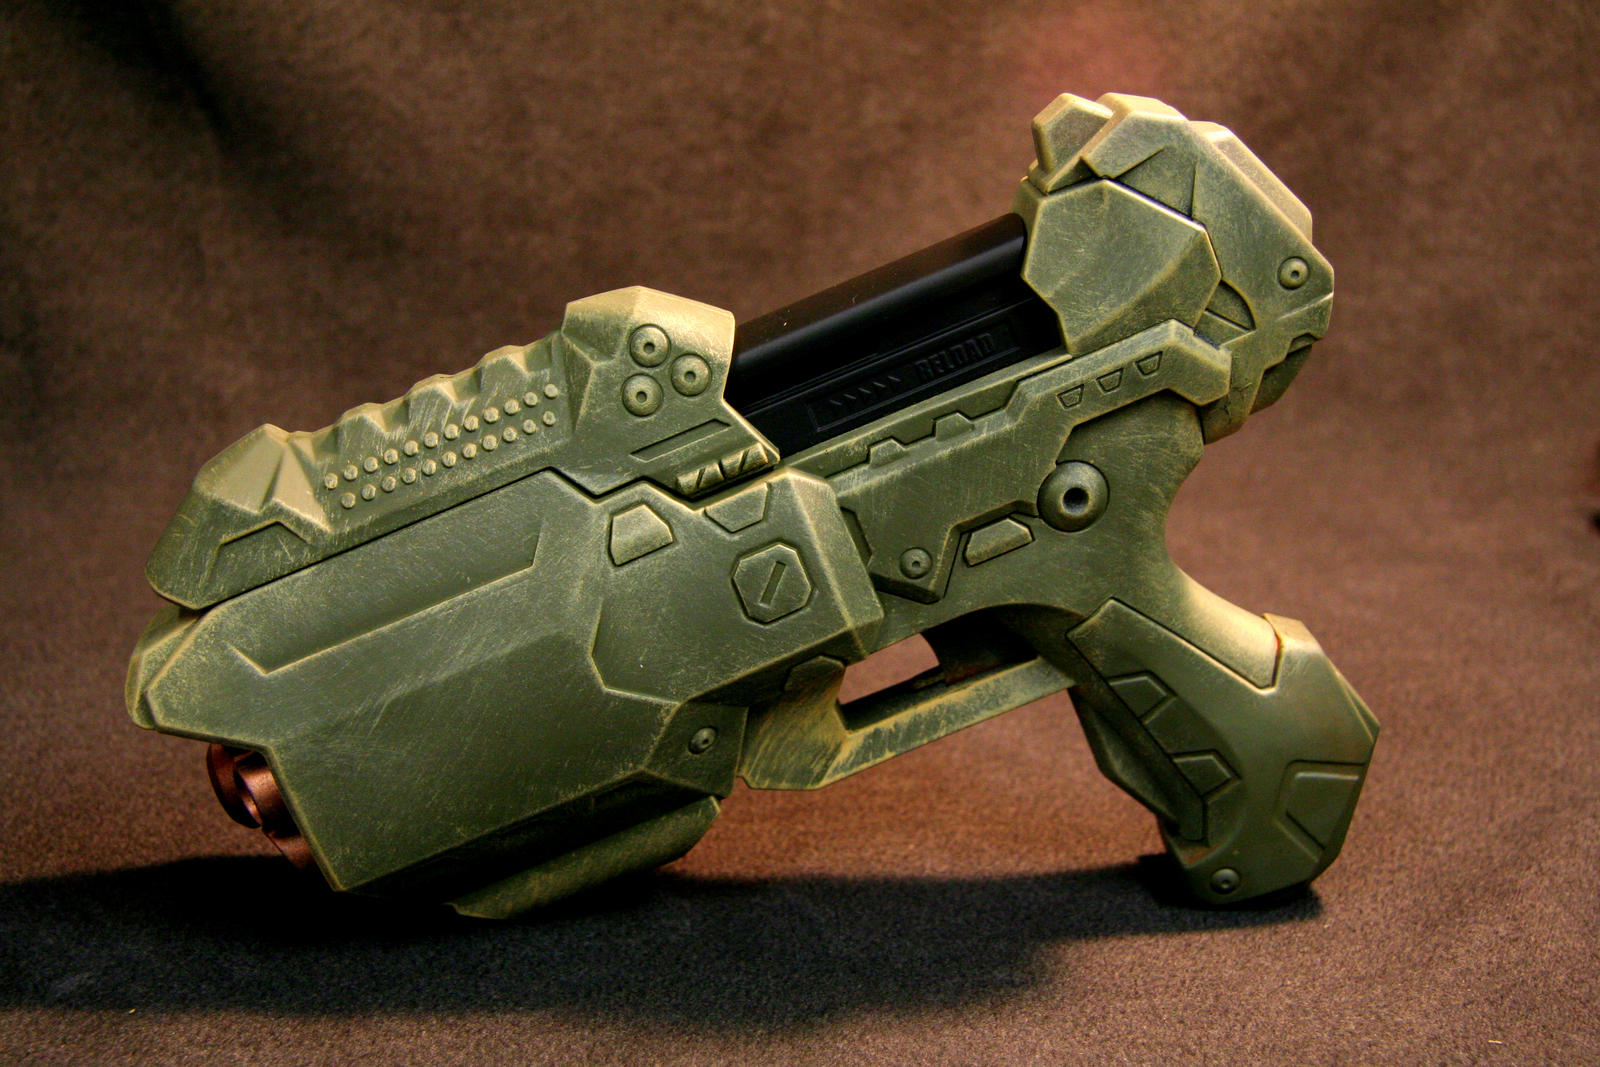 Halo Style Nerf Gun by JohnsonArmsProps Halo Style Nerf Gun by  JohnsonArmsProps